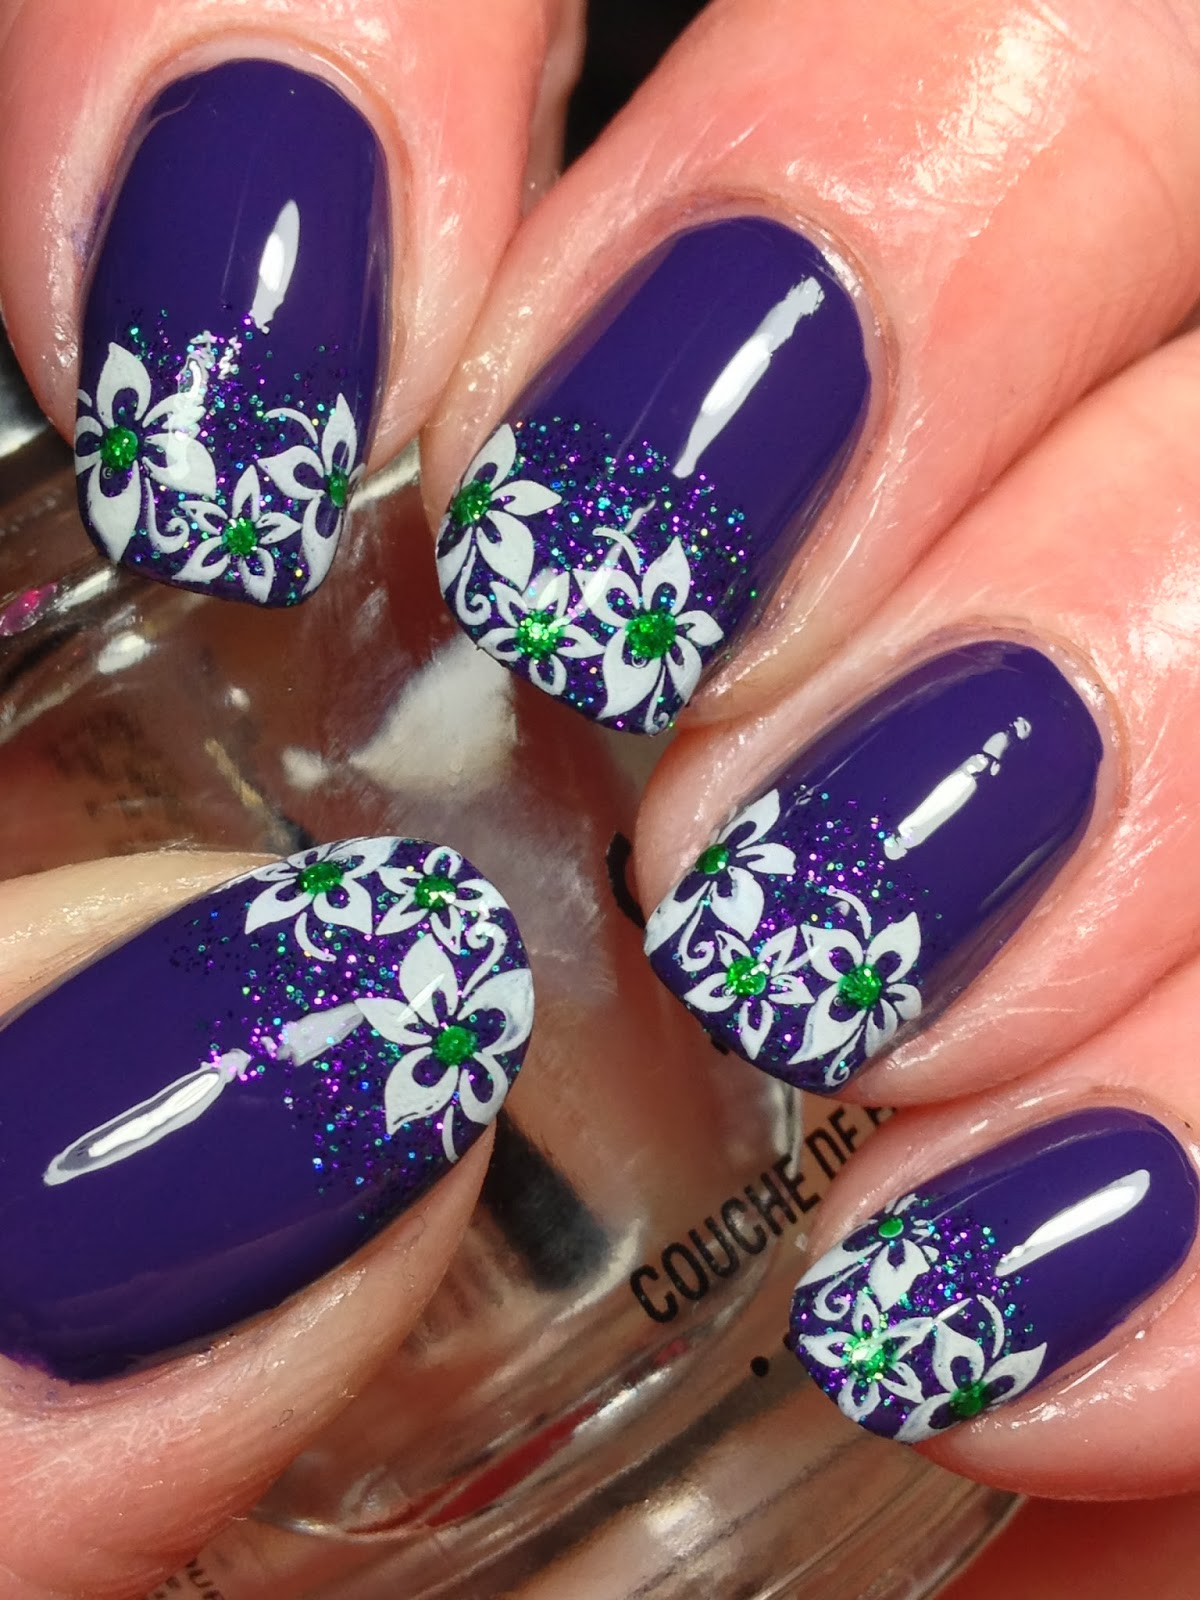 Canadian Nail Fanatic: Mardi Gras Nails